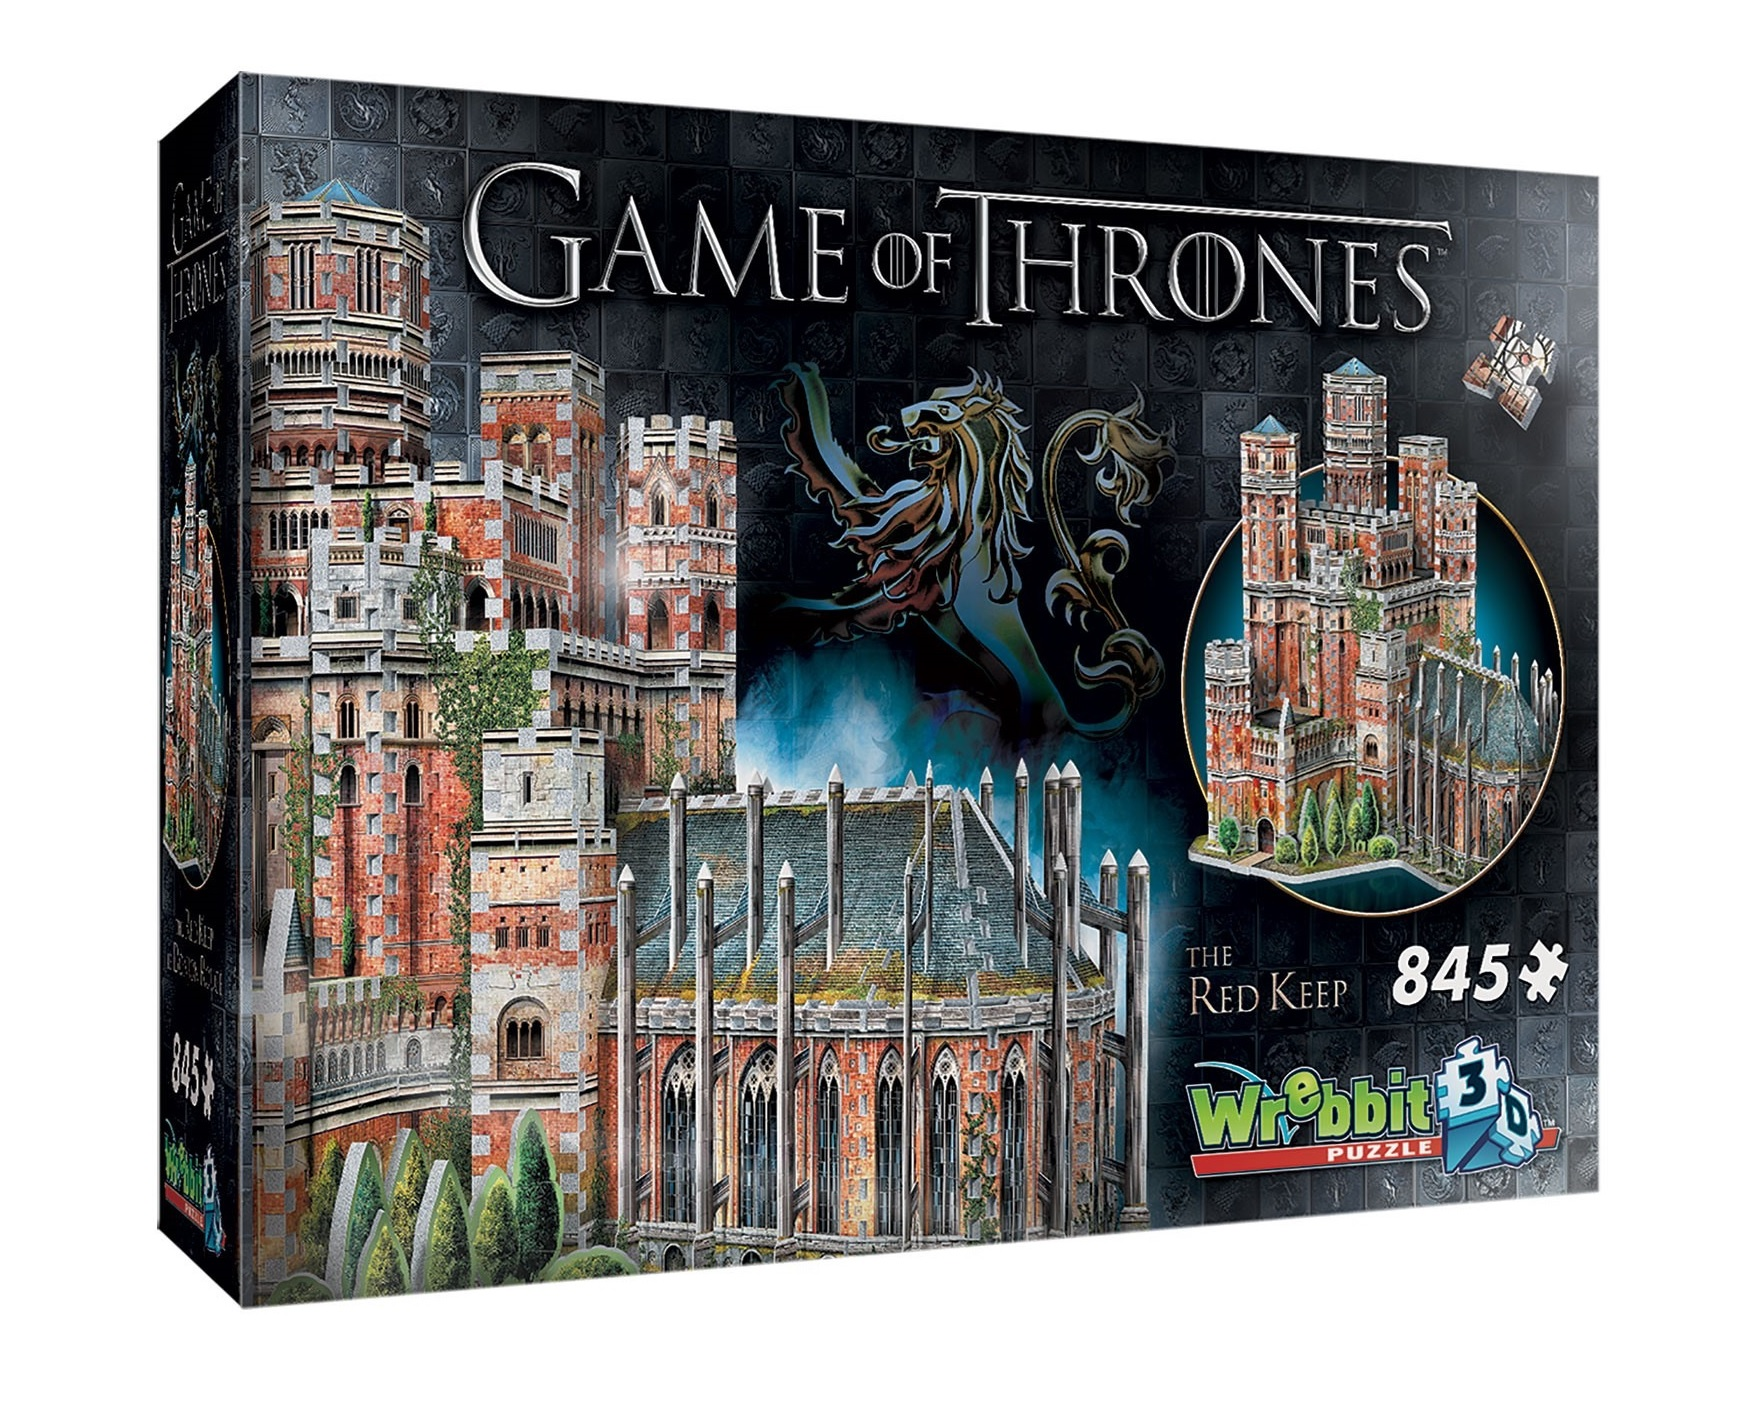 The Red Keep puzzle